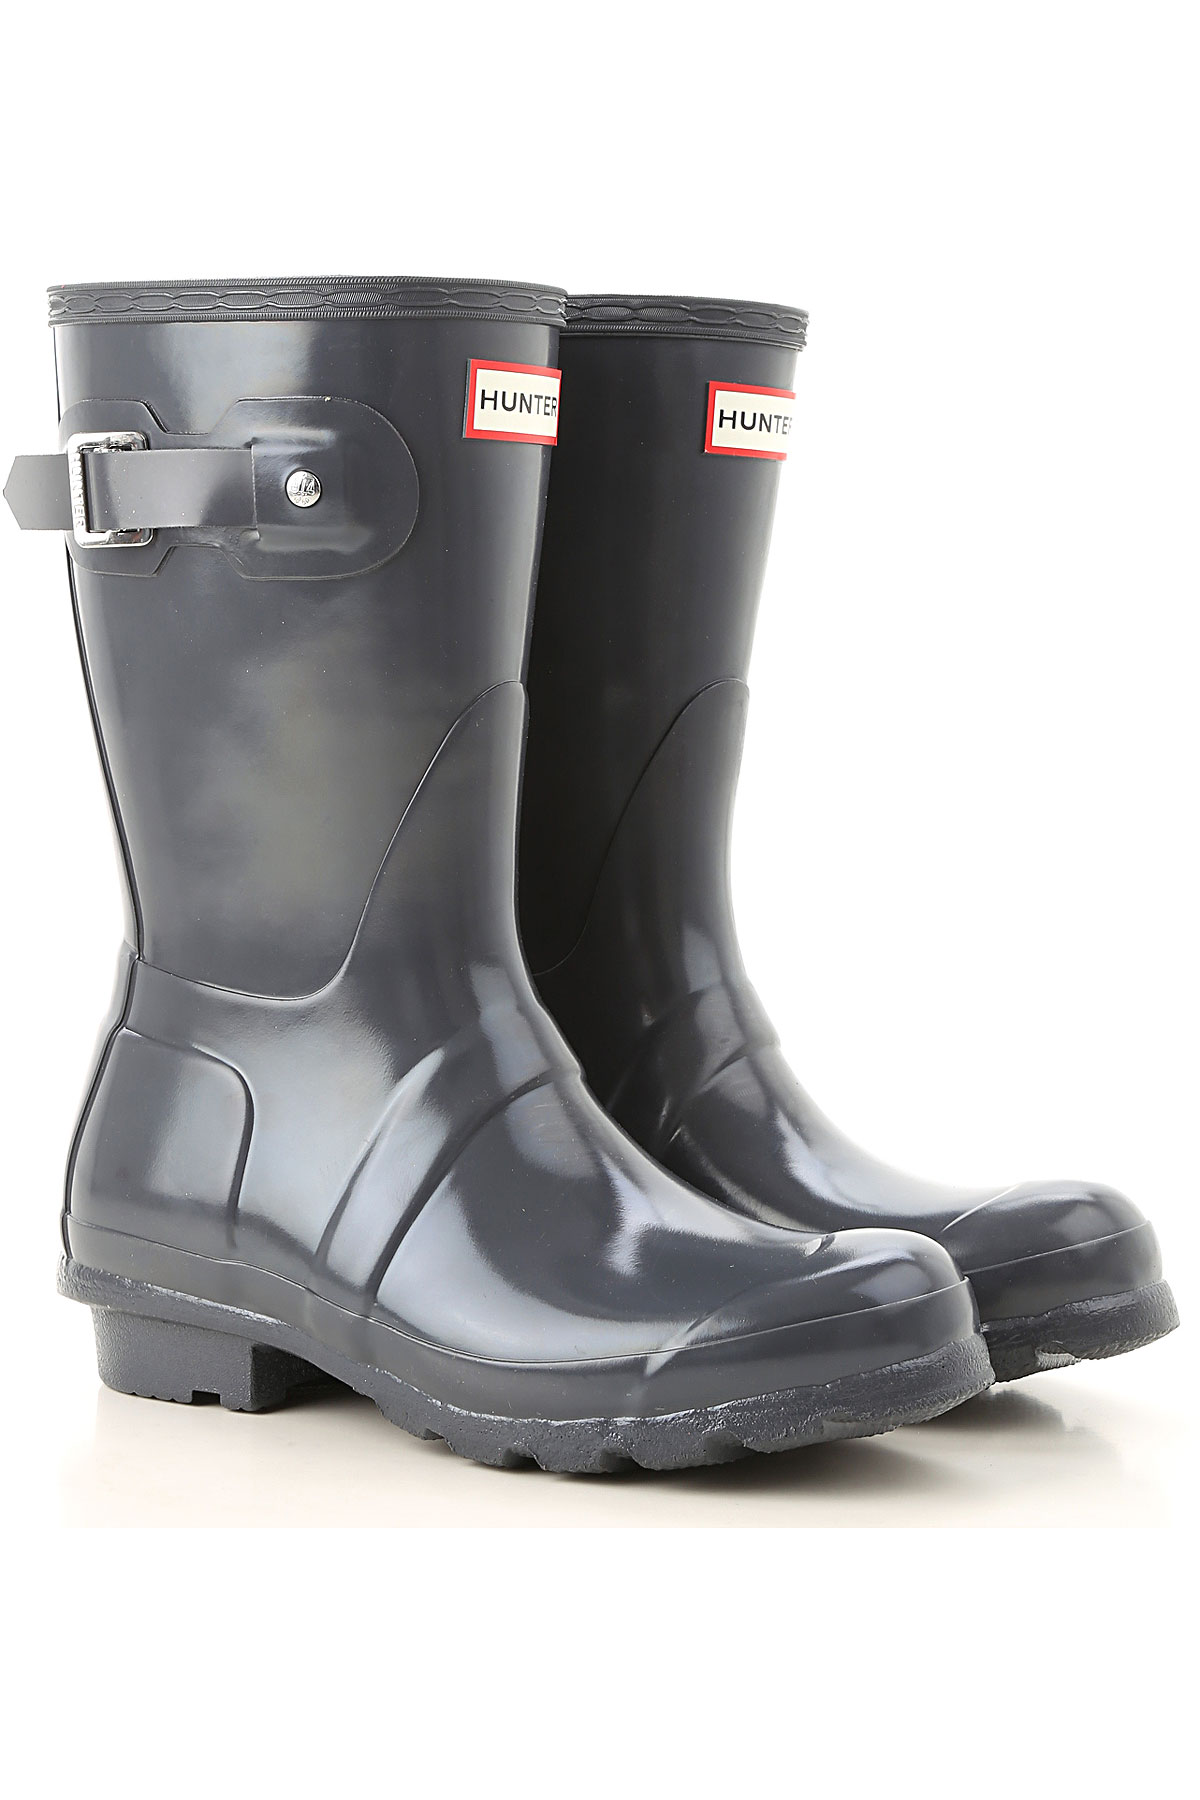 Image of Hunter Boots for Women, Booties, Dark Slate, Rubber, 2017, 6 7 8 9